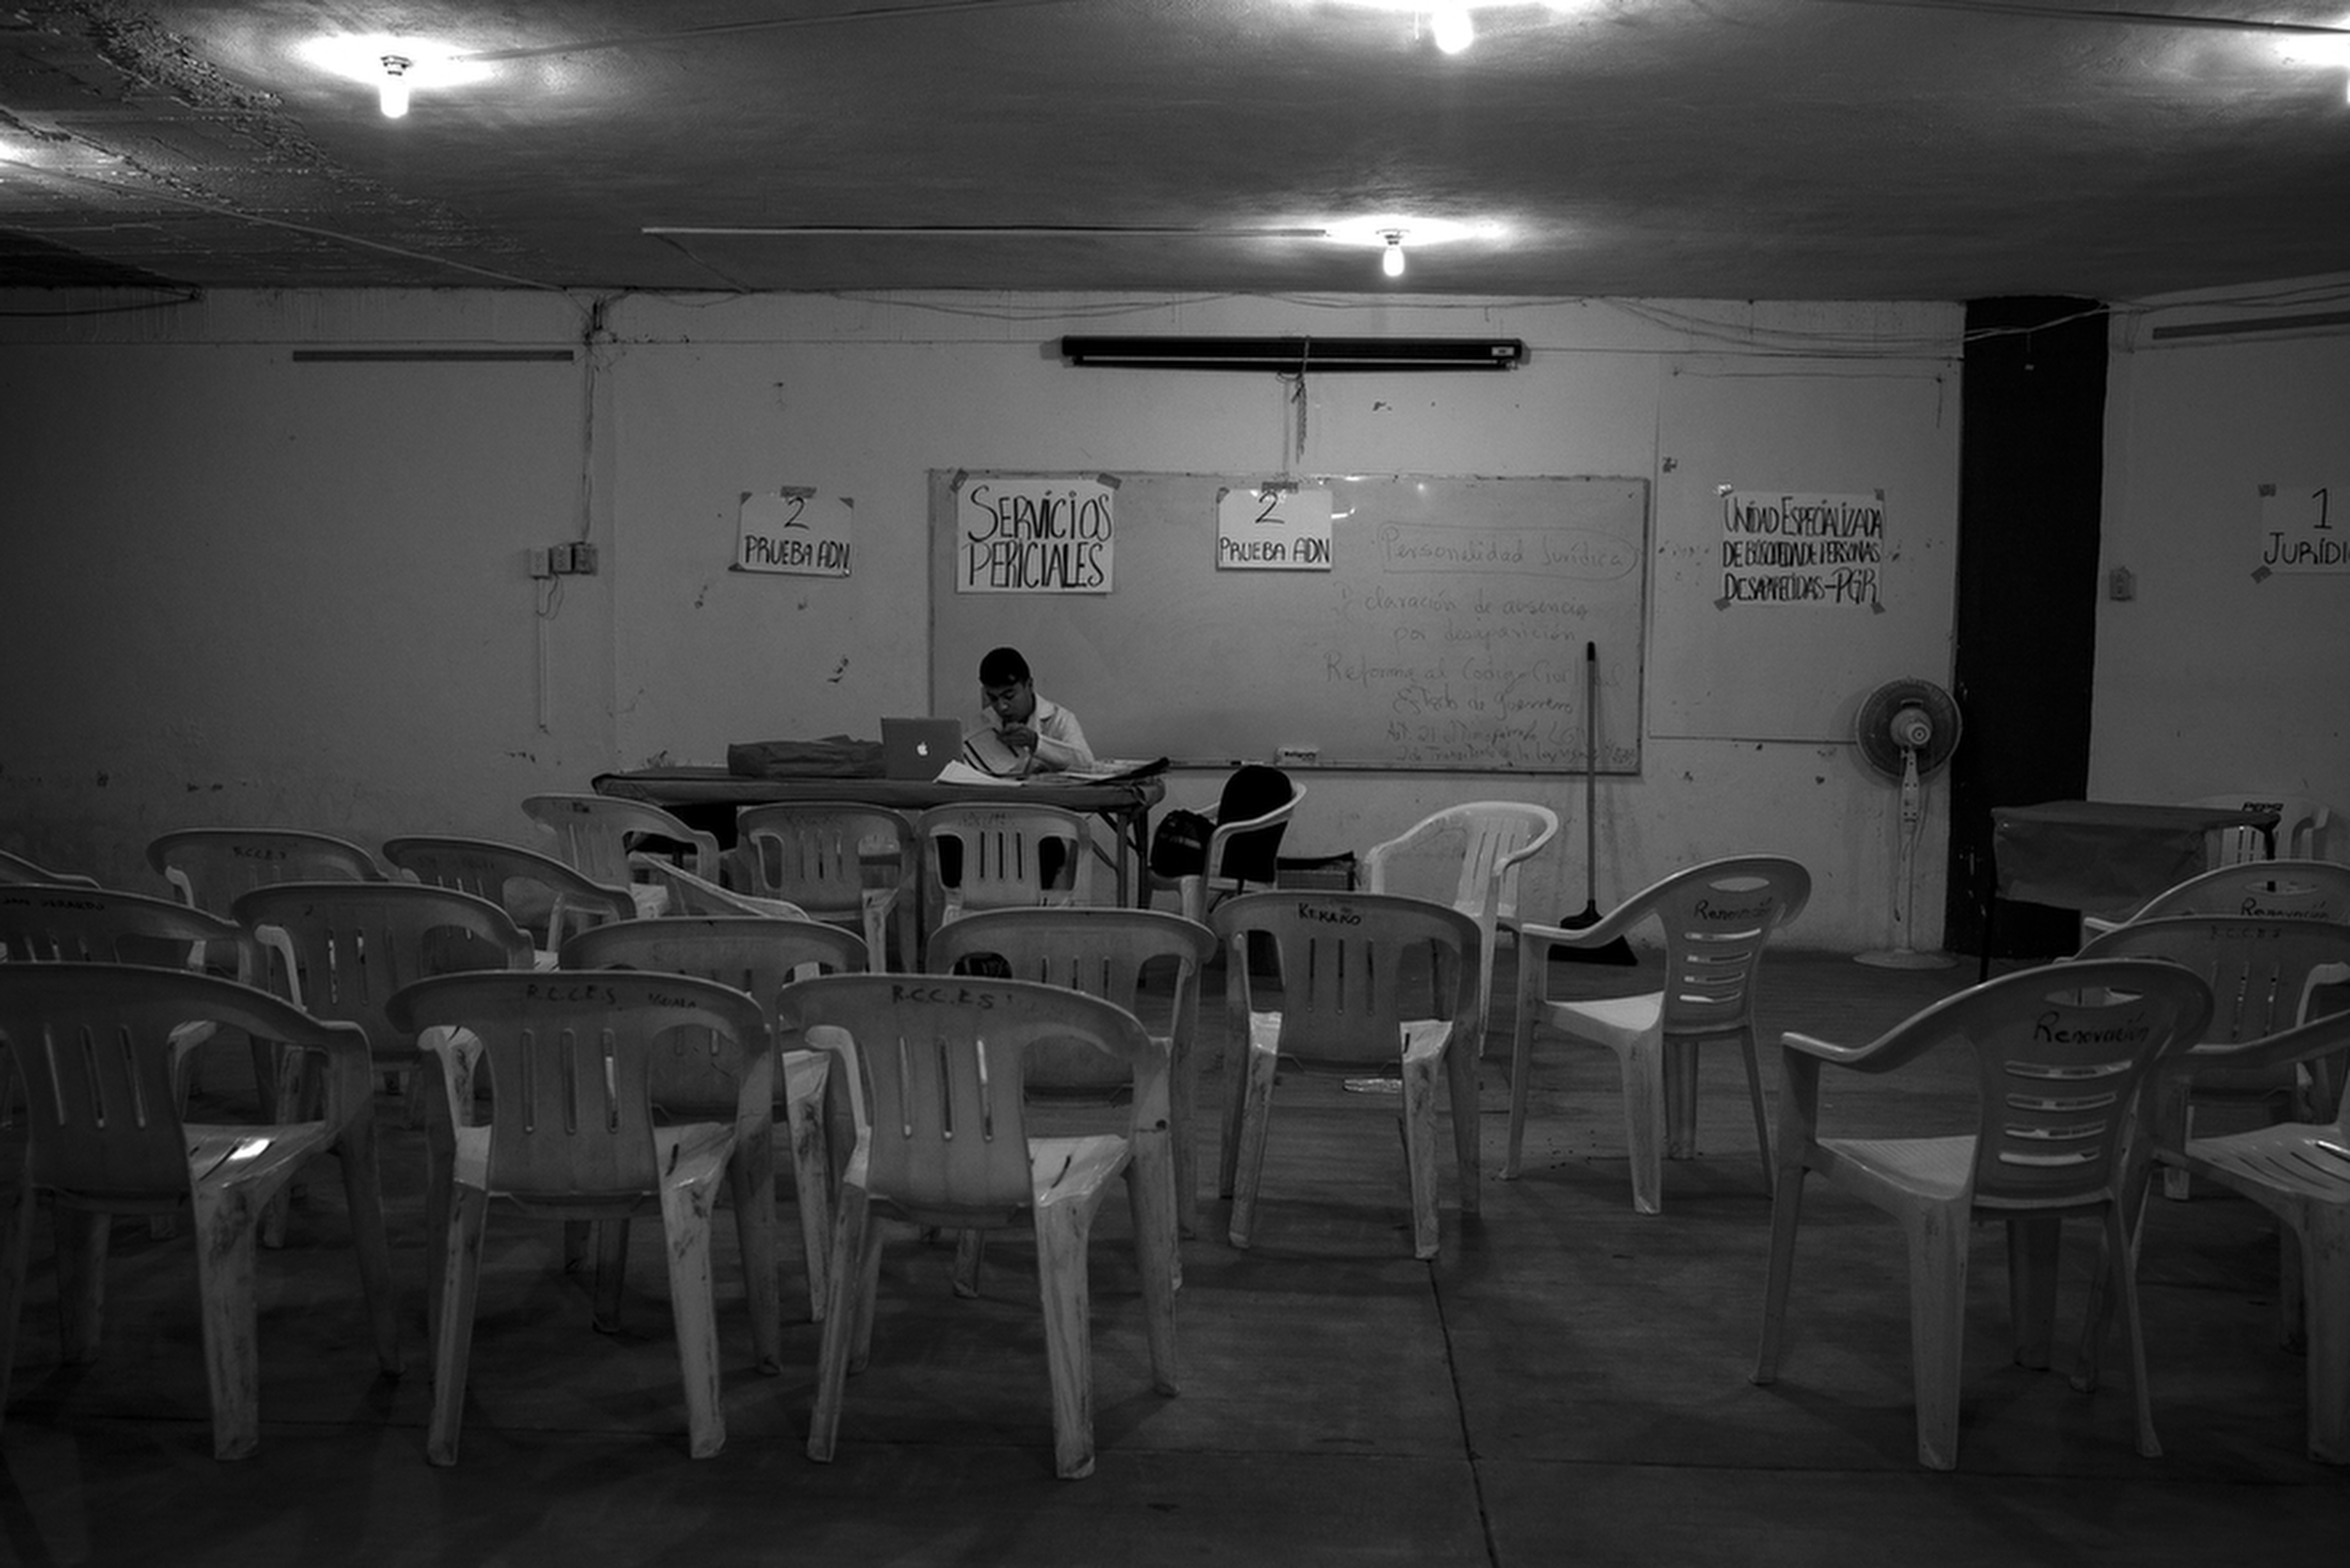 A worker with the   Procuraduría General de la República  (Mexico's Attorney General) sits in a church basement taking DNA samples. As more mass graves were found in the area, families with missing relatives tested their DNA to help identify remains. Iguala, Mexico. December 5, 2014.